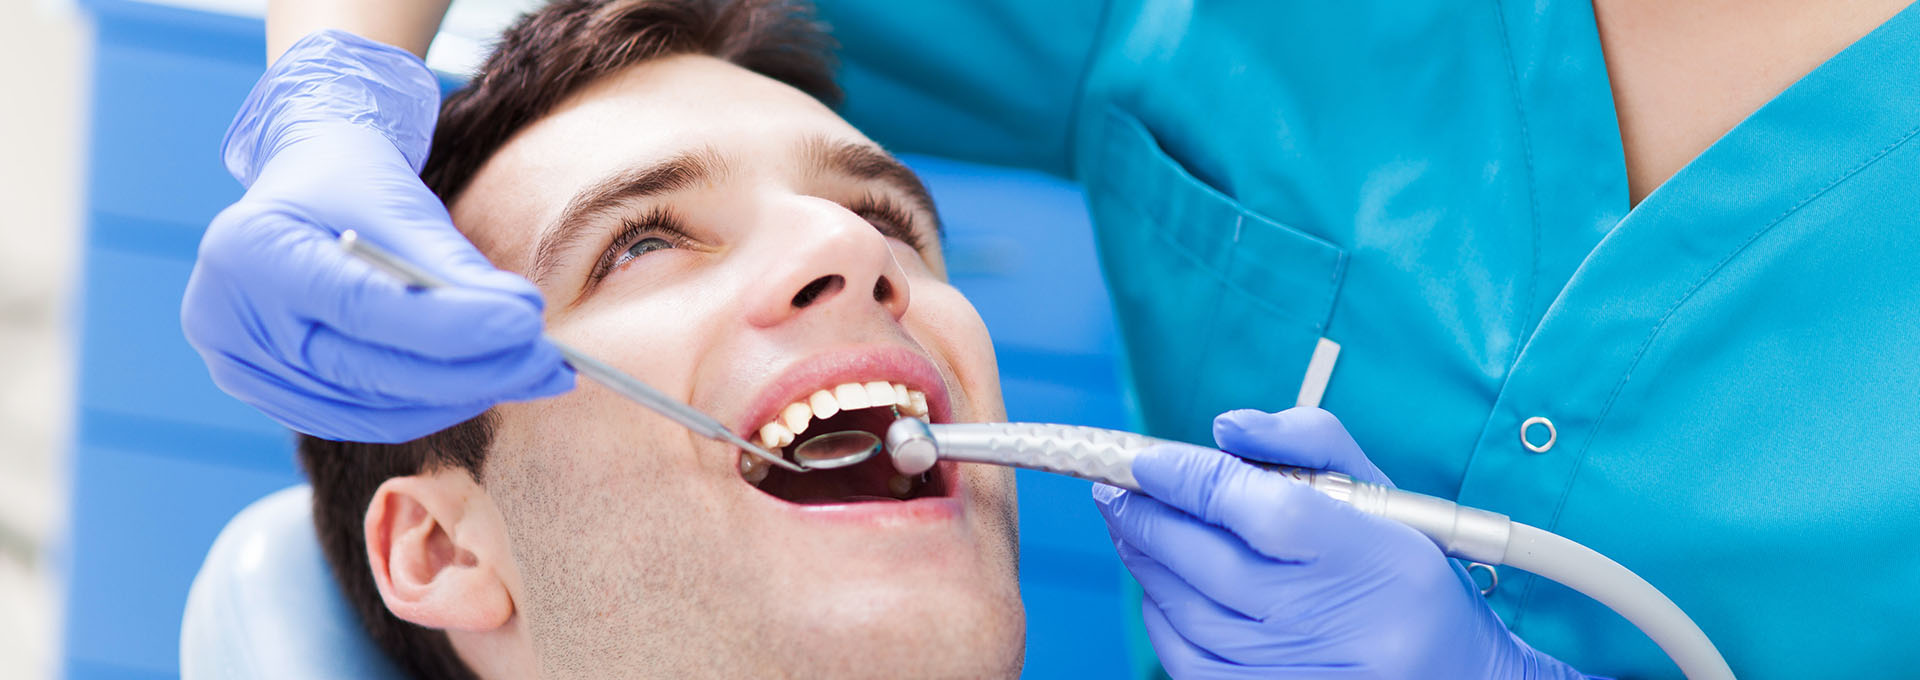 Benefits of Affordable Dental Insurance